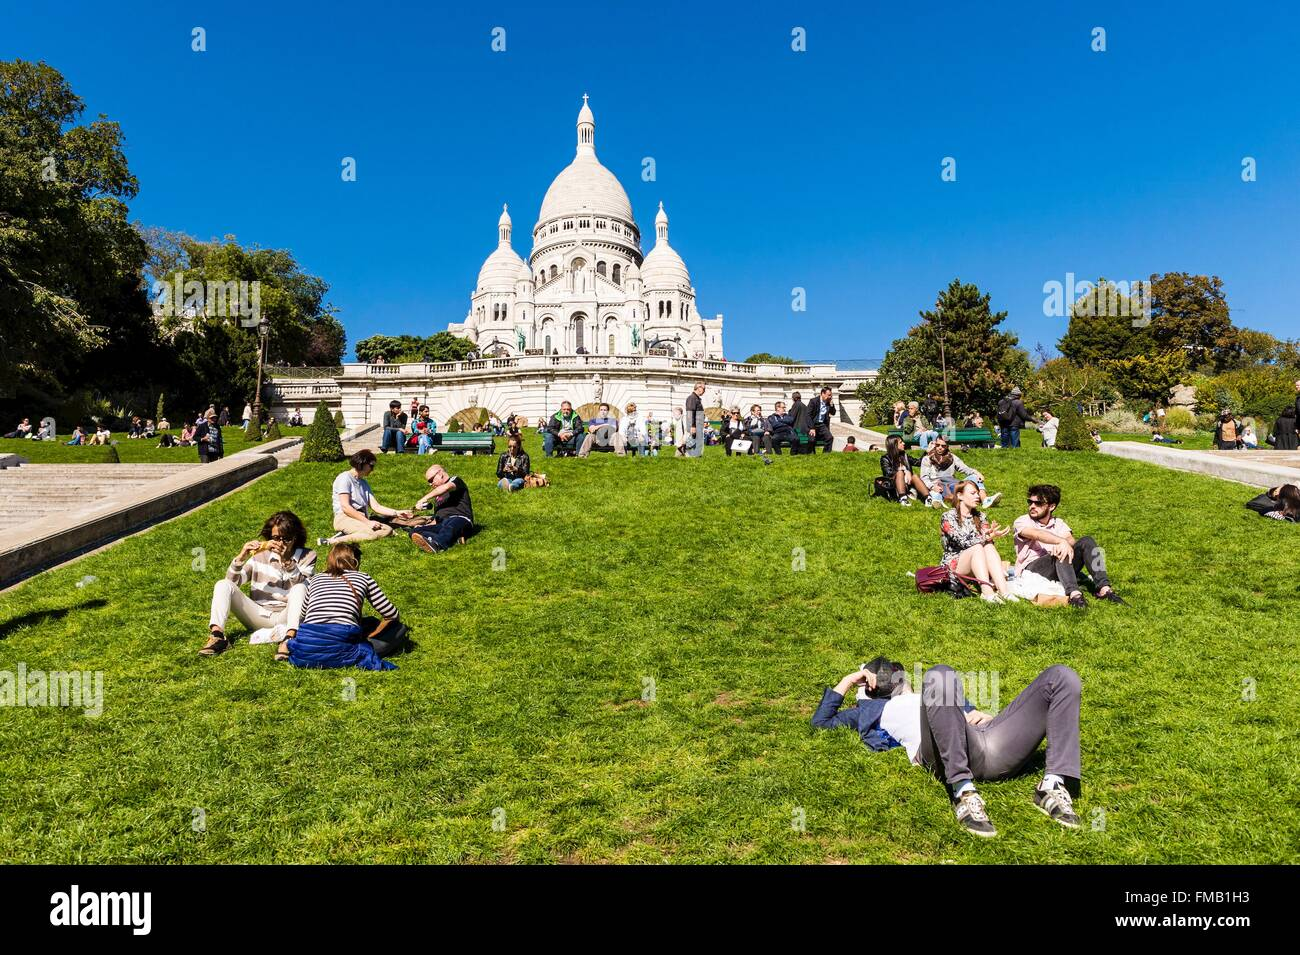 France, Paris, la colline de Montmartre et du Sacré-Cœur Photo Stock